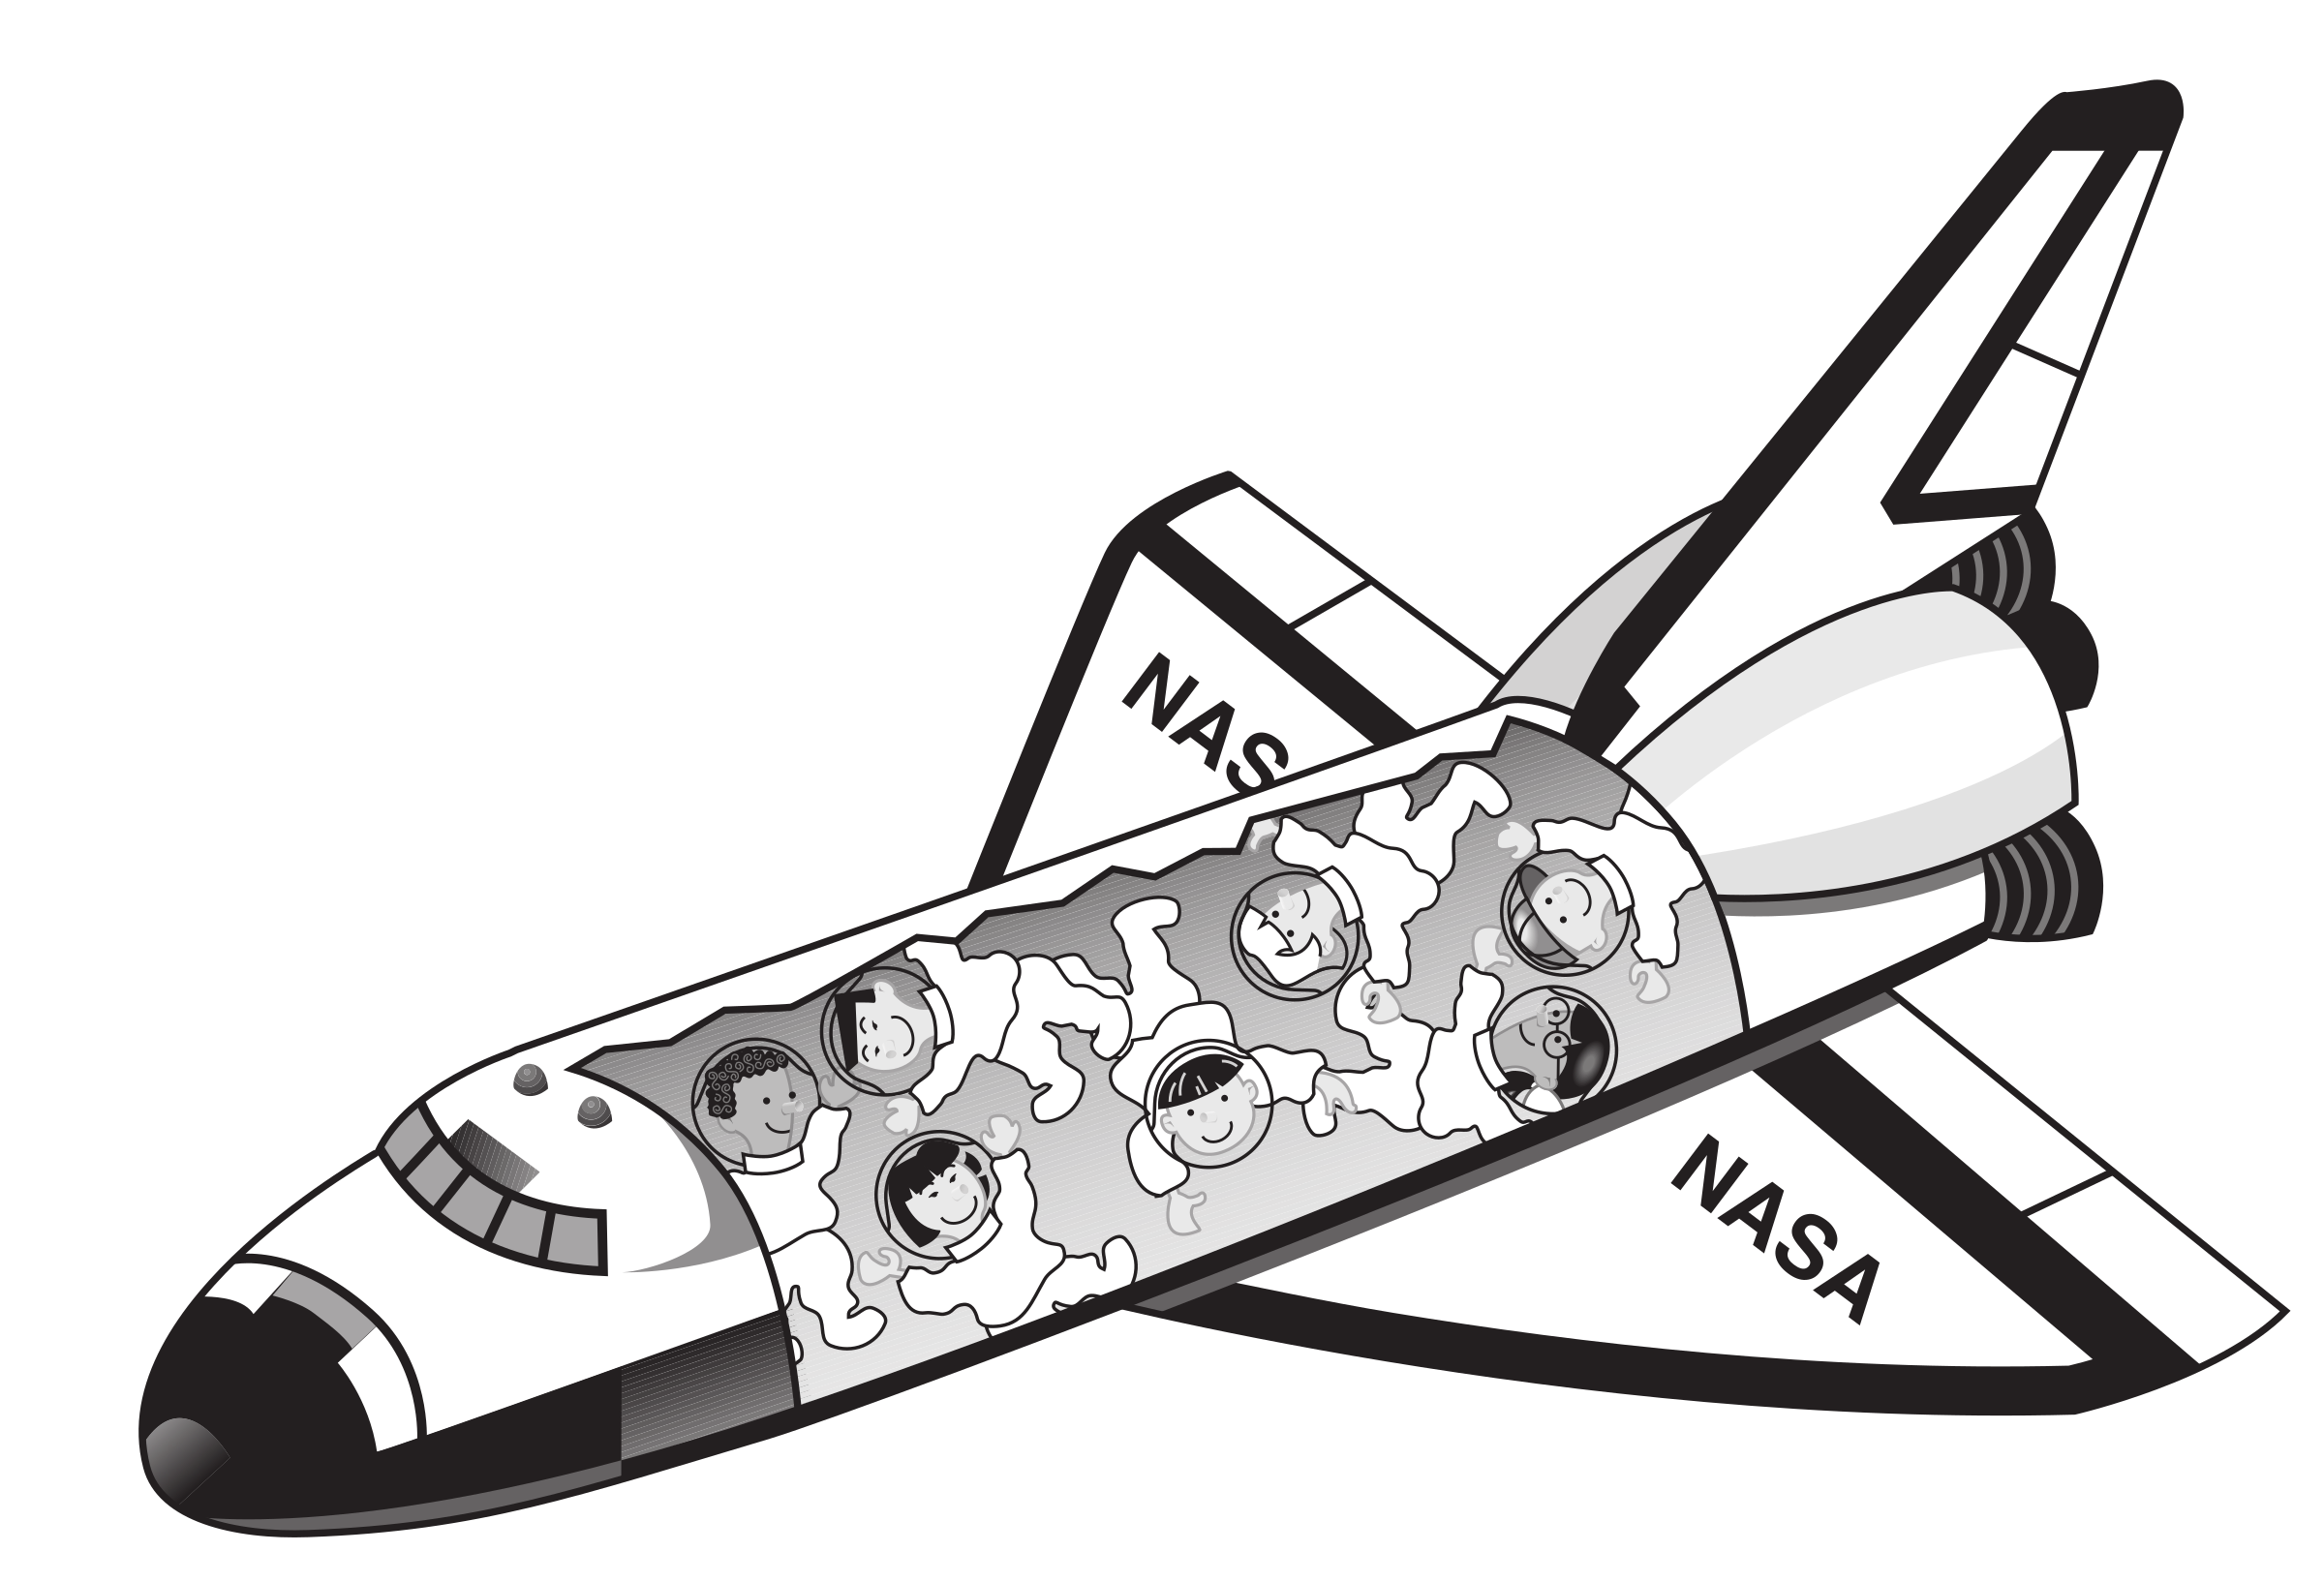 Nasa Clipart Free Download Best Nasa Clipart On Clipartmag Com